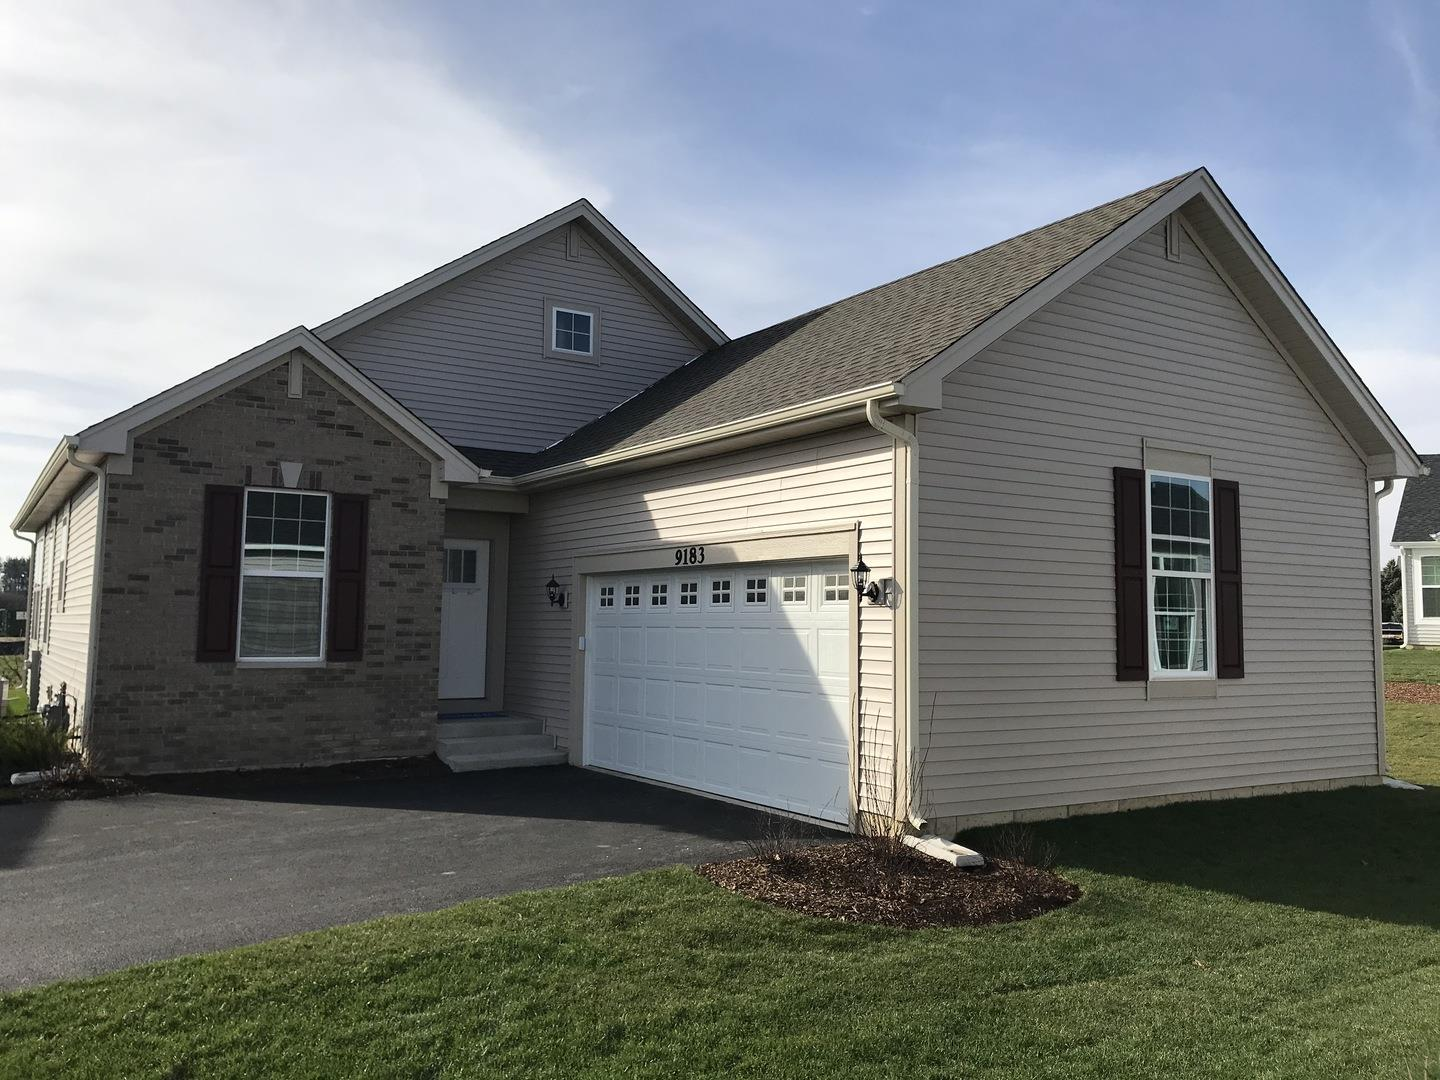 9183 WALES Court, Huntley, IL 60142 - #: 10787204